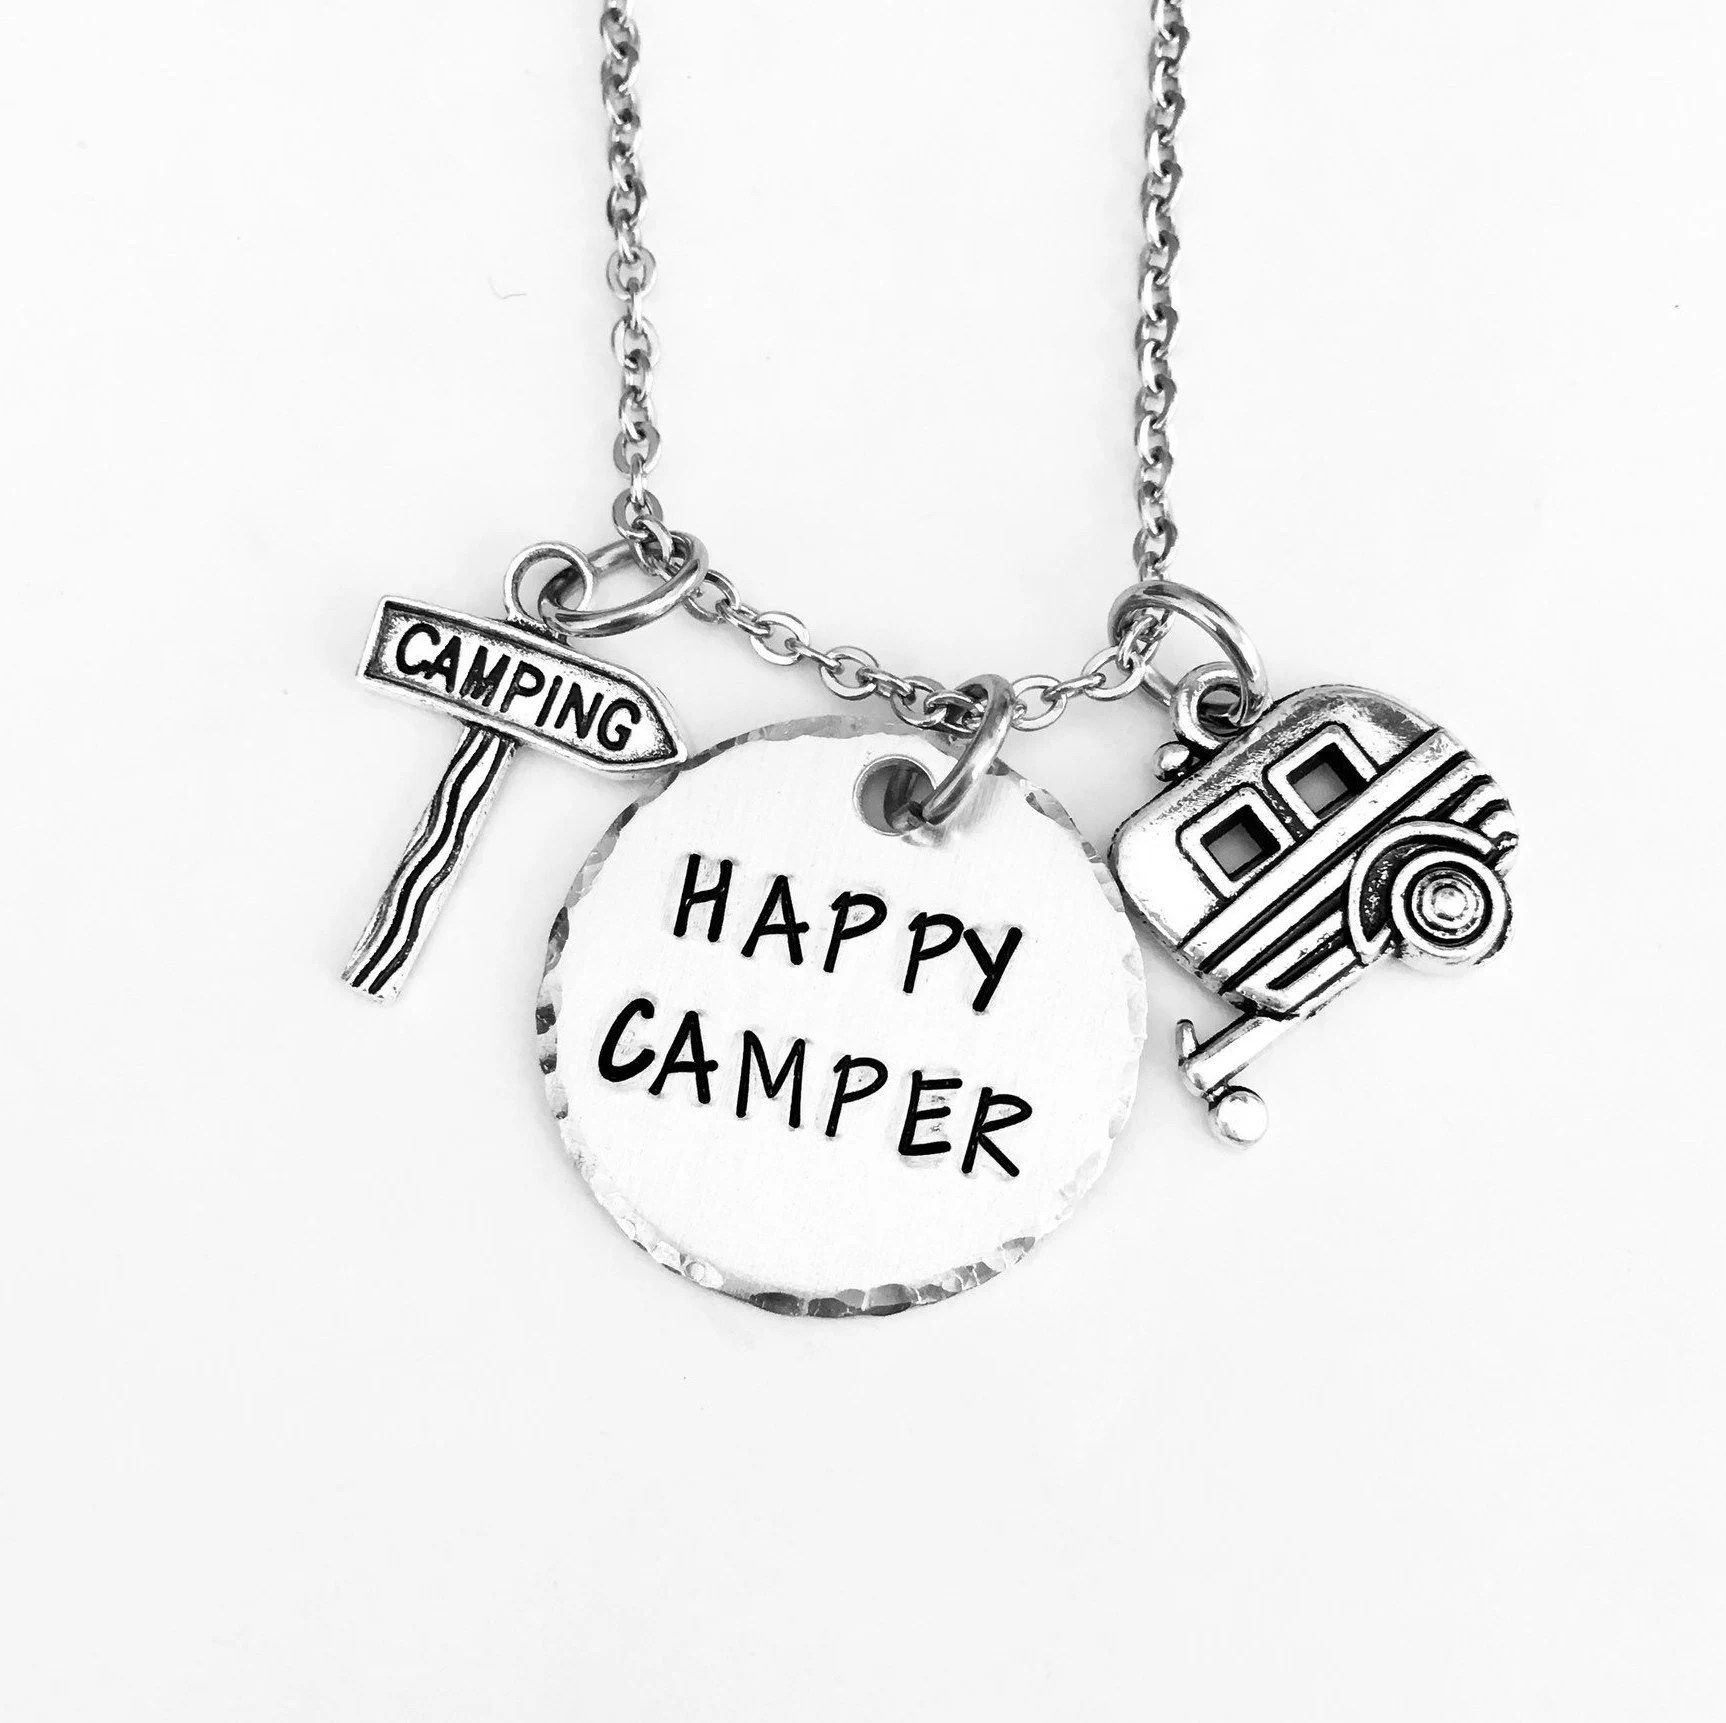 Happy Camper Necklace Keyring Camping Rv Motorhome